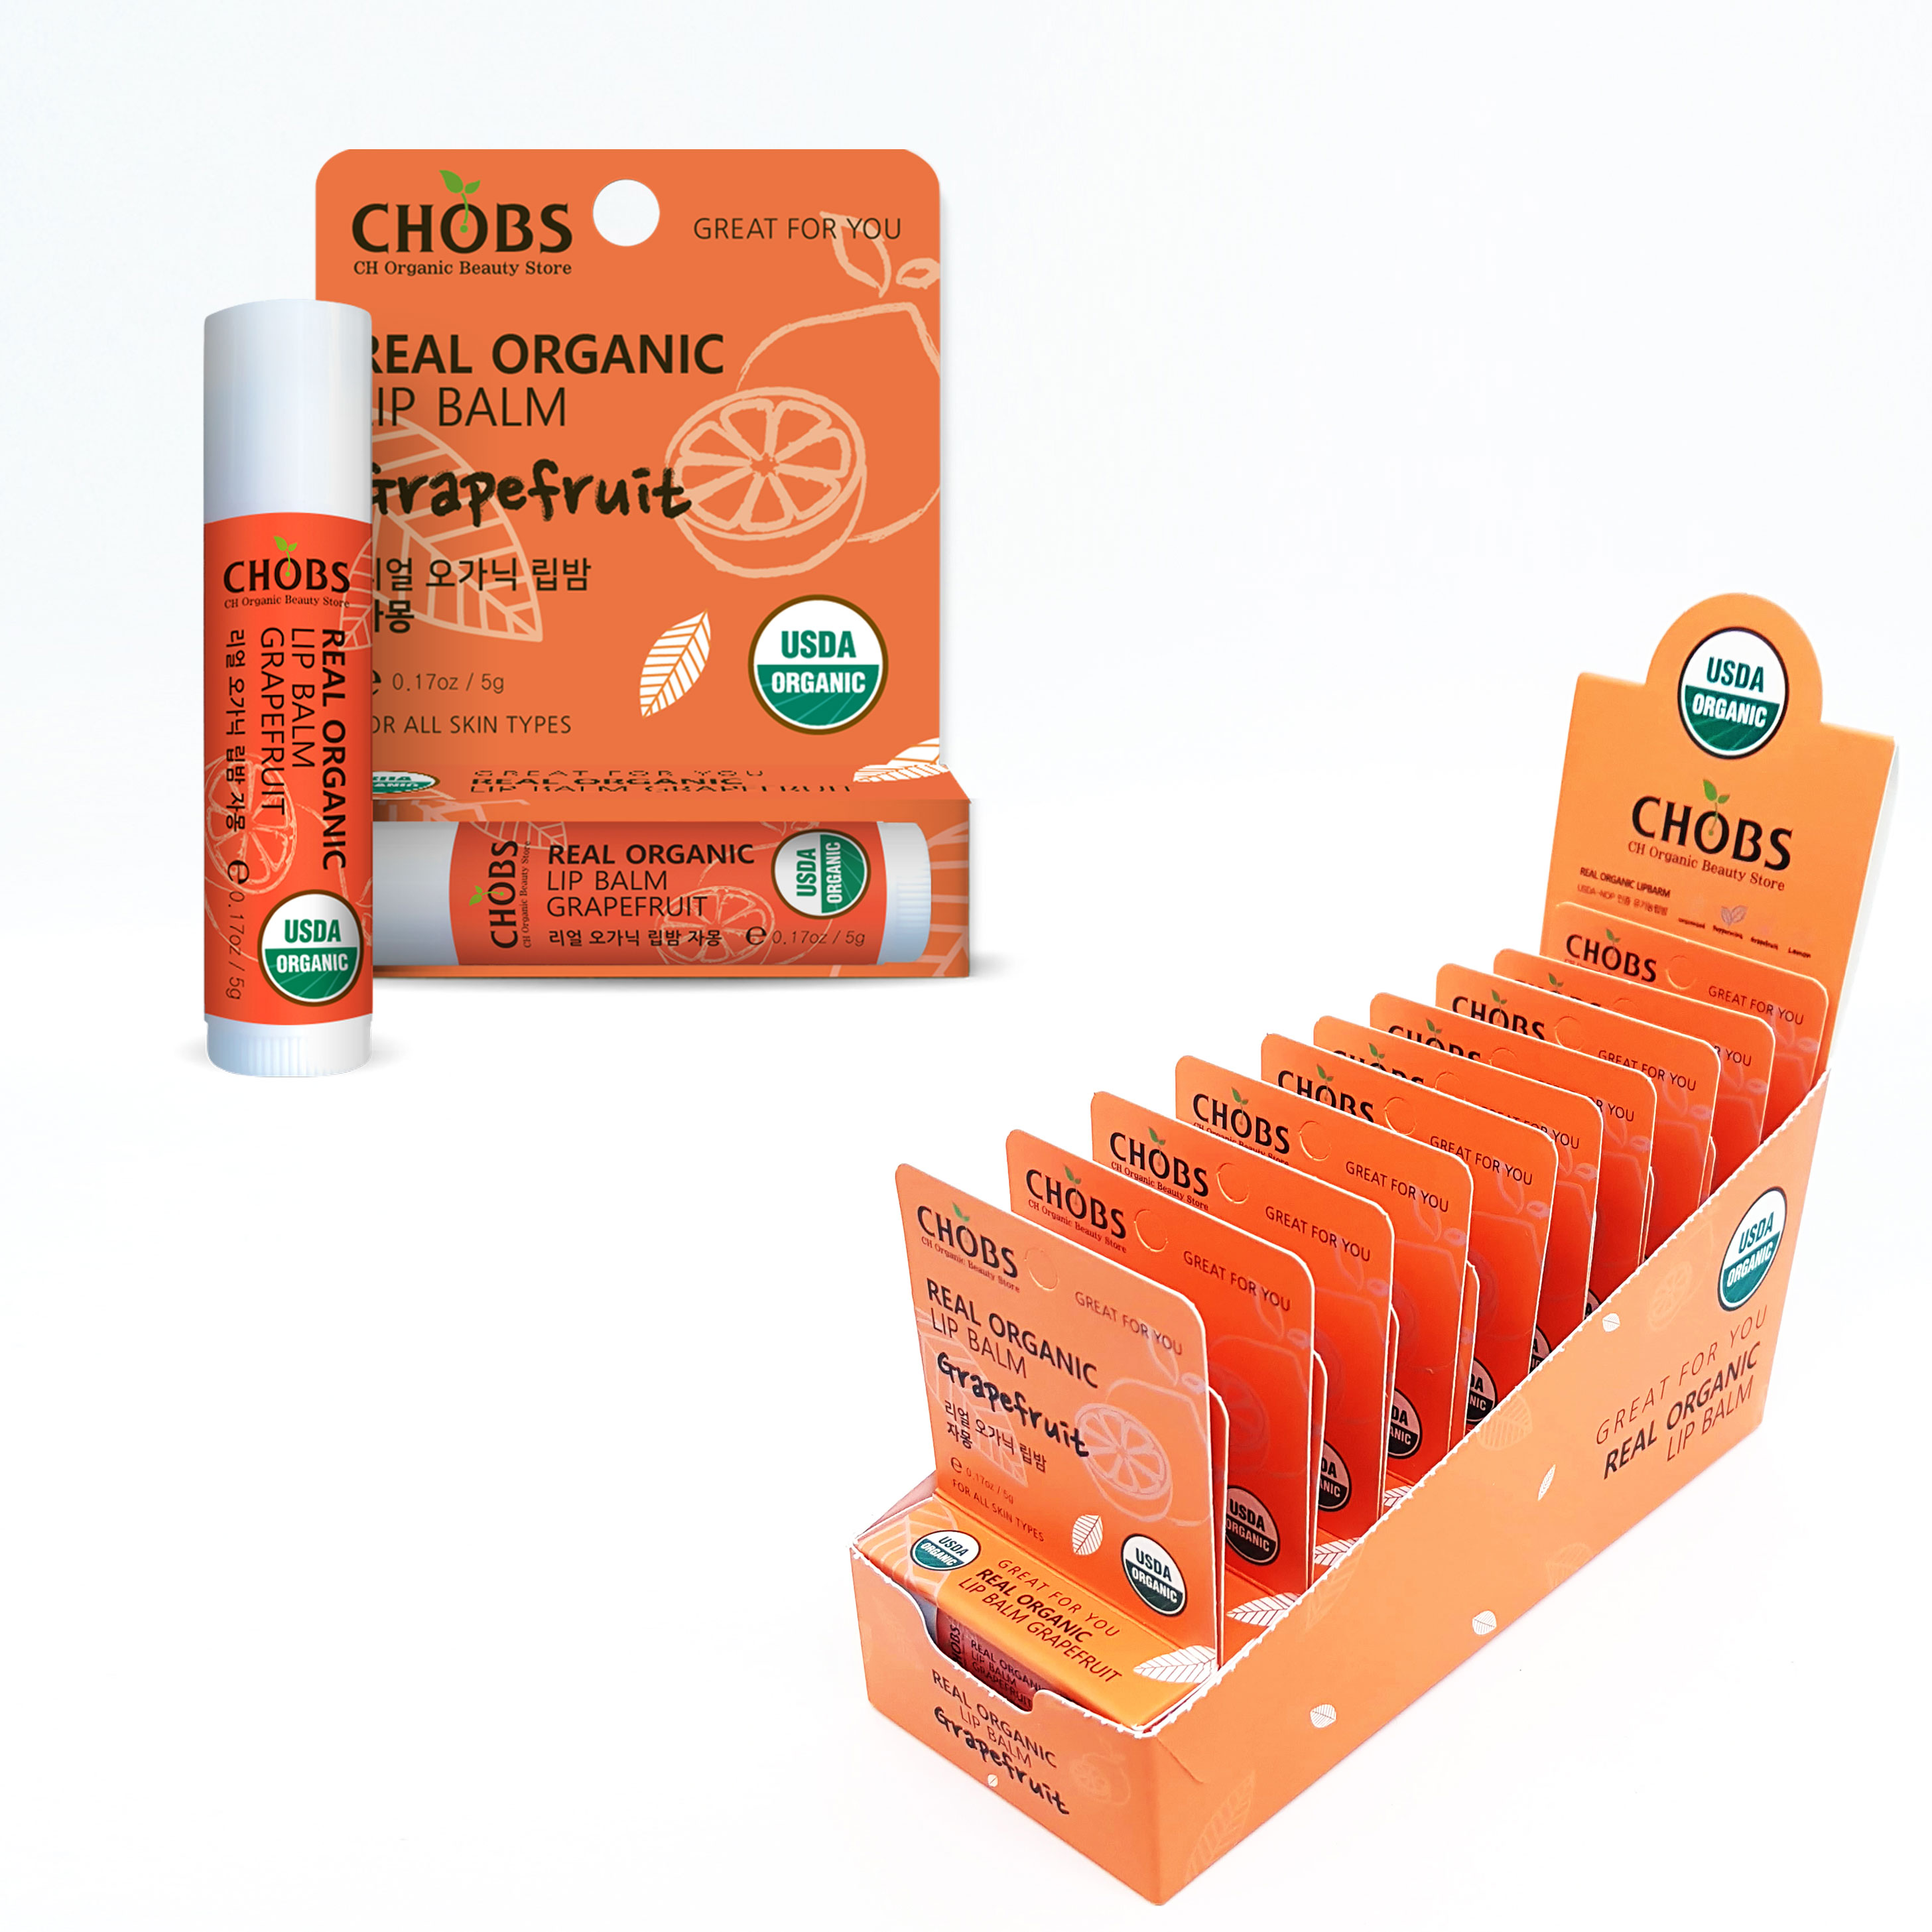 [USDA]CHOBS(찹스)유기농 립밤 자몽 (5g*20EA/1RRP BOX)